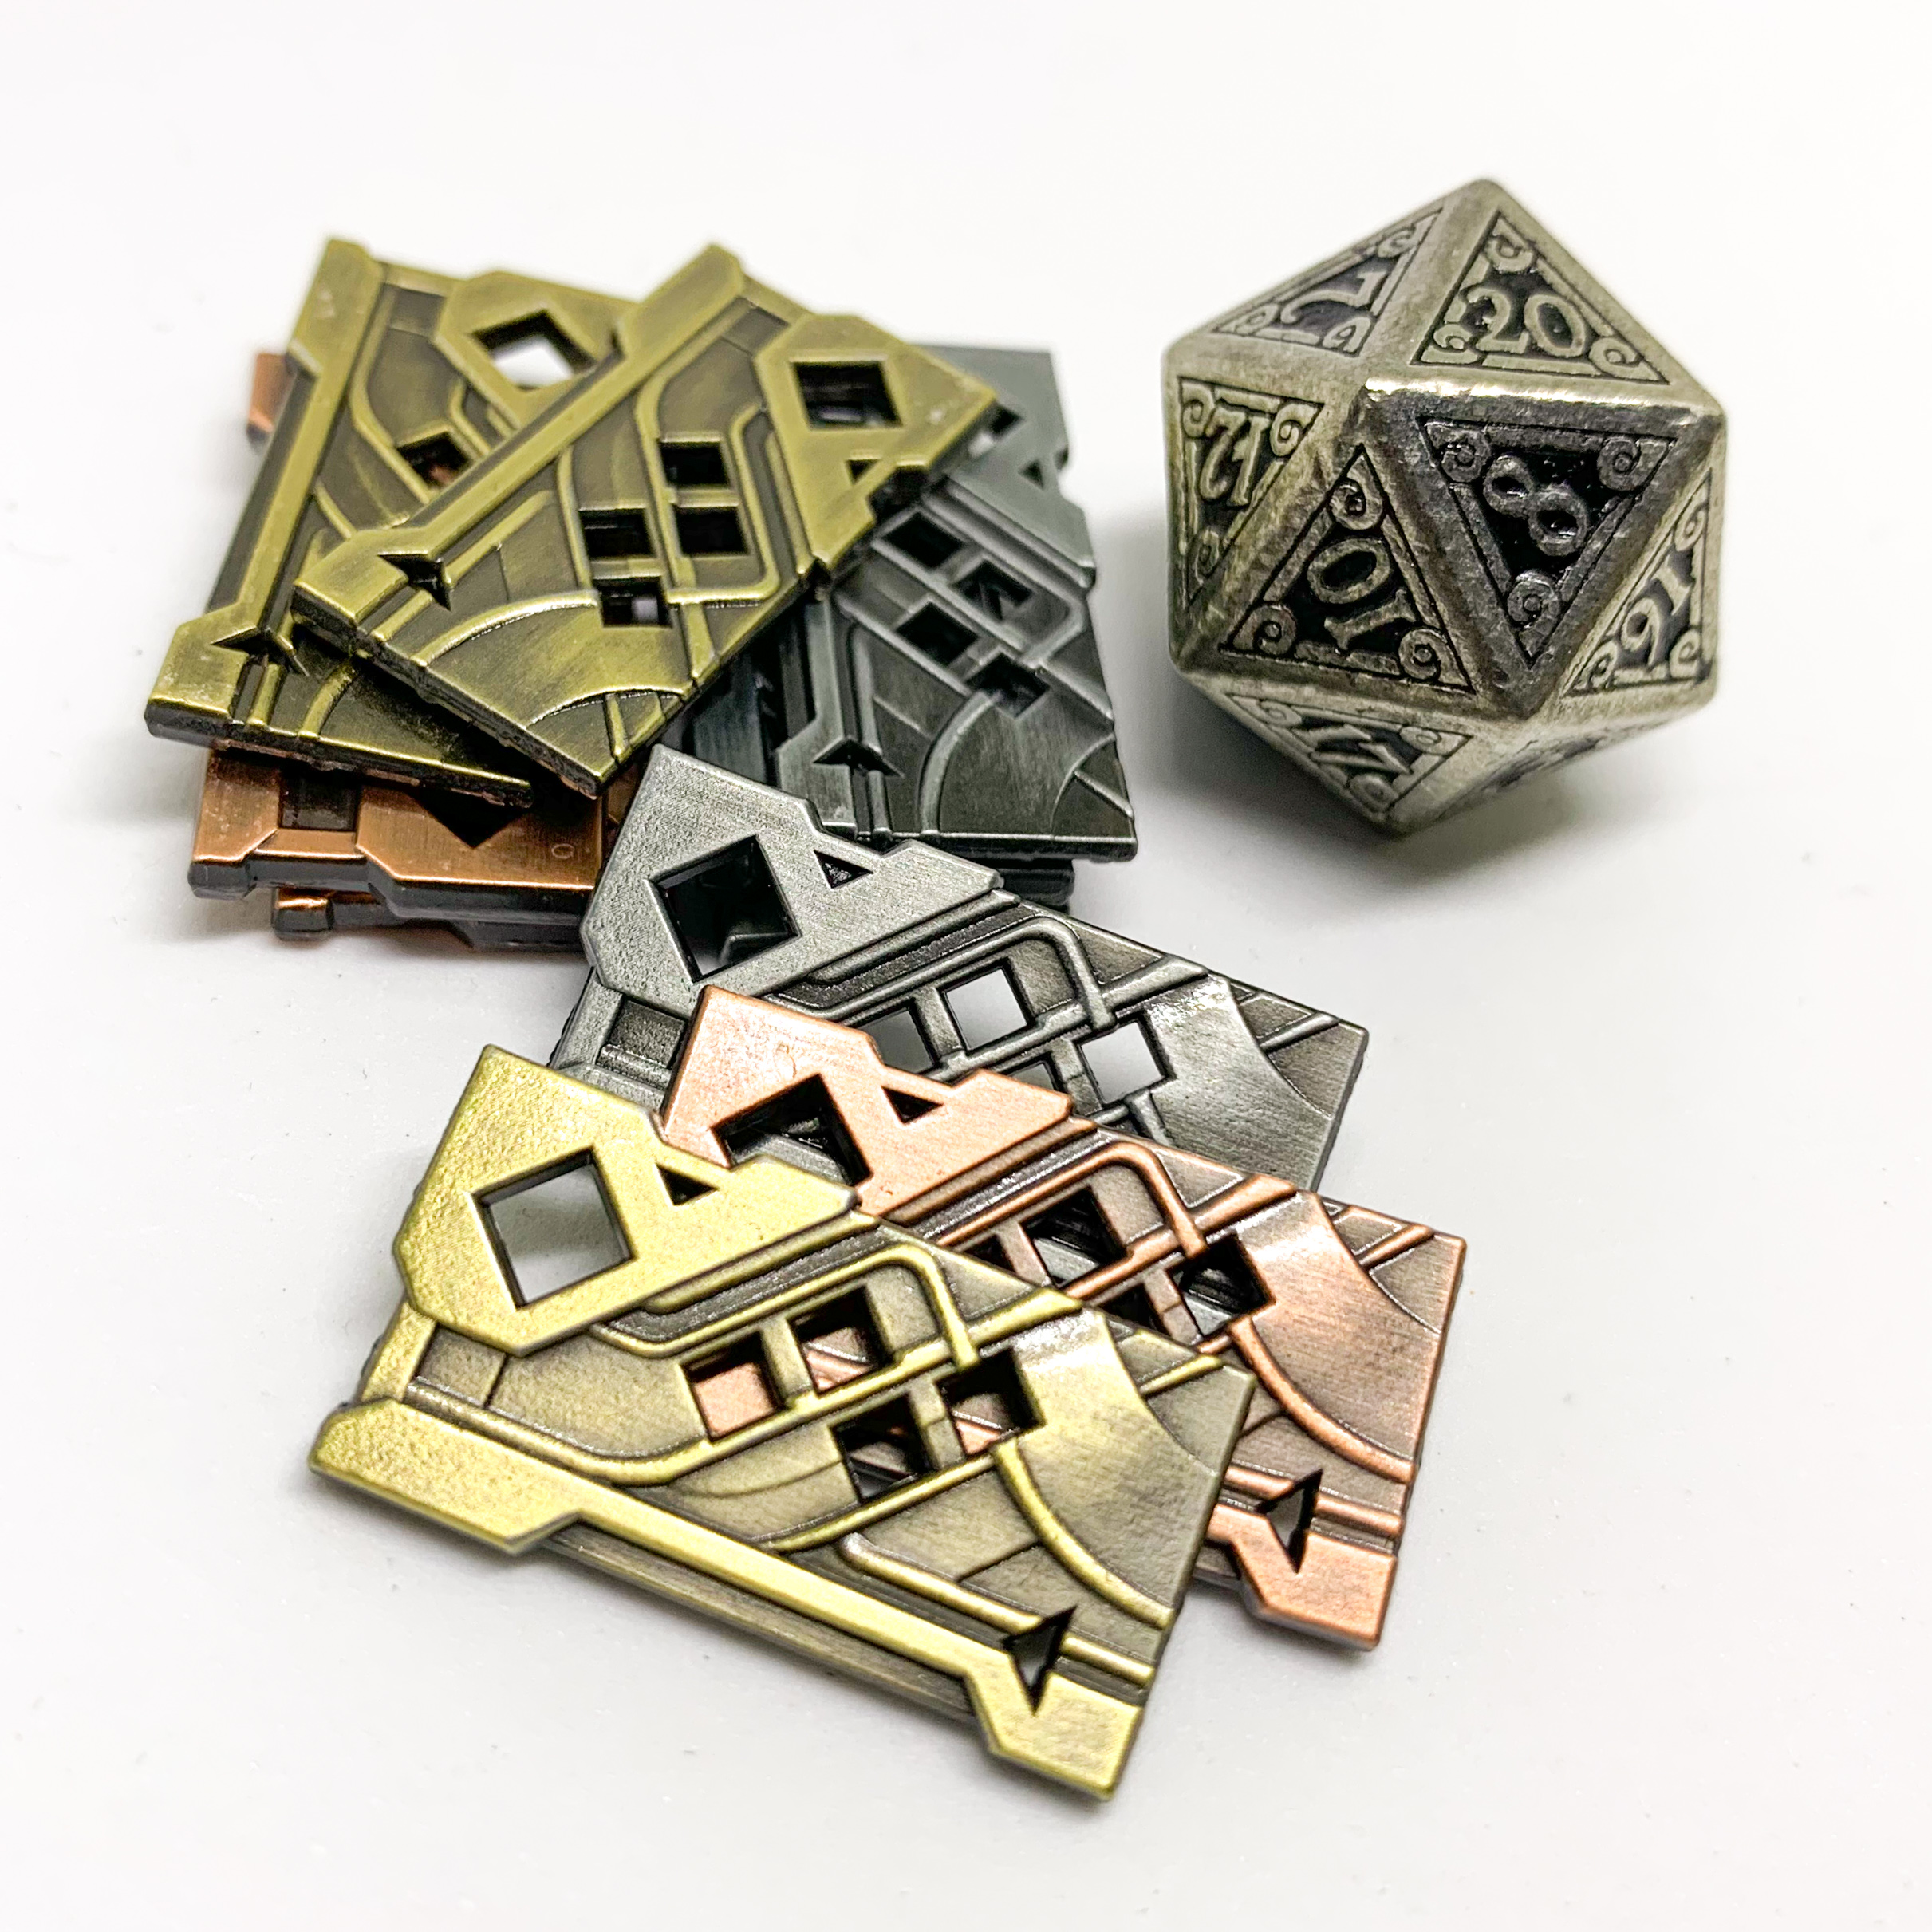 Campaign Coins - Numenera Shims type 4